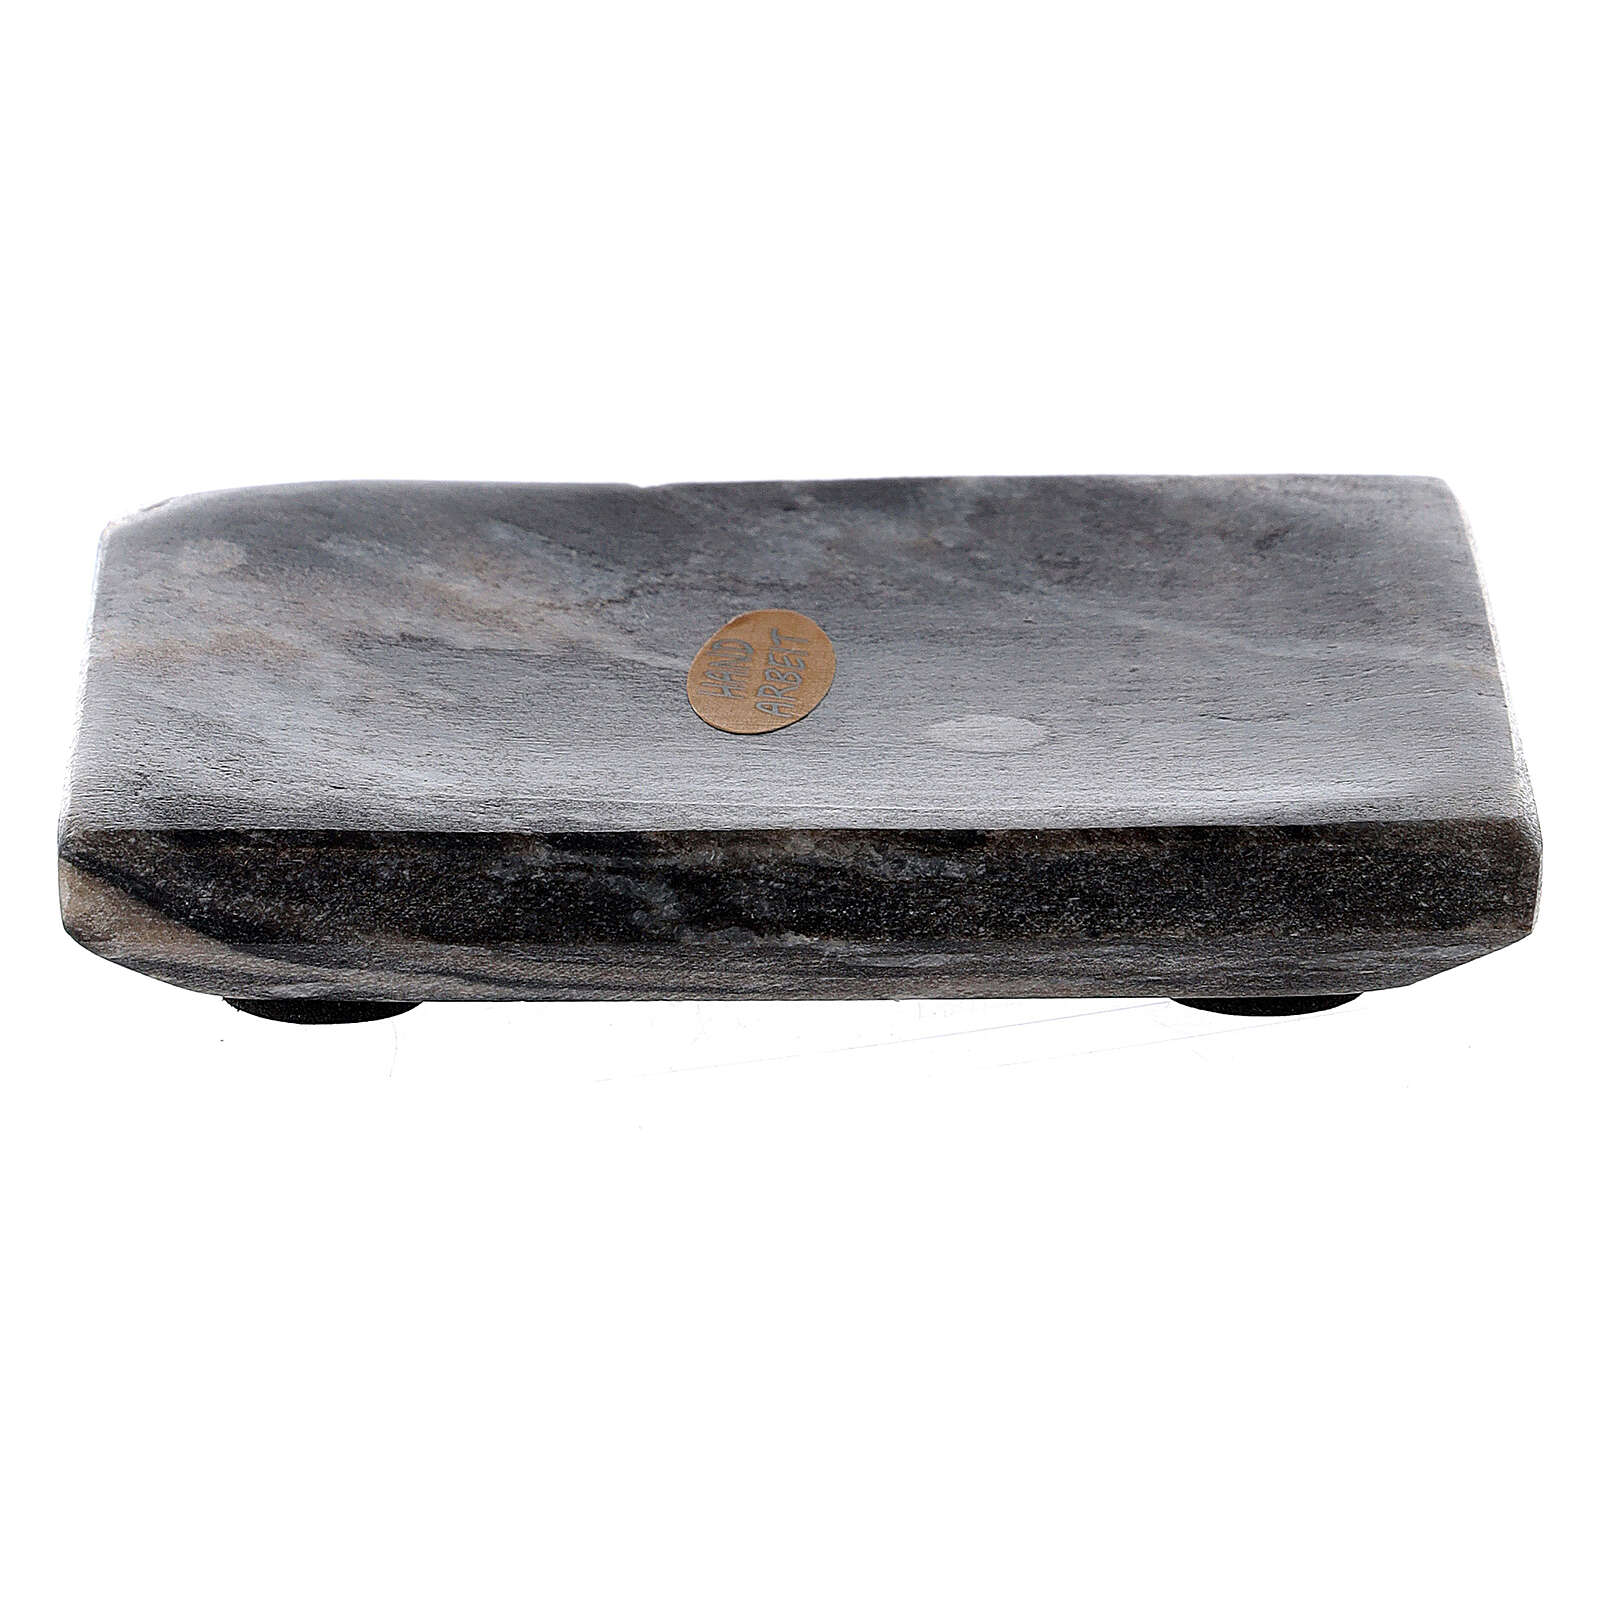 Rectangular stone candle holder plate 4x3 in 3